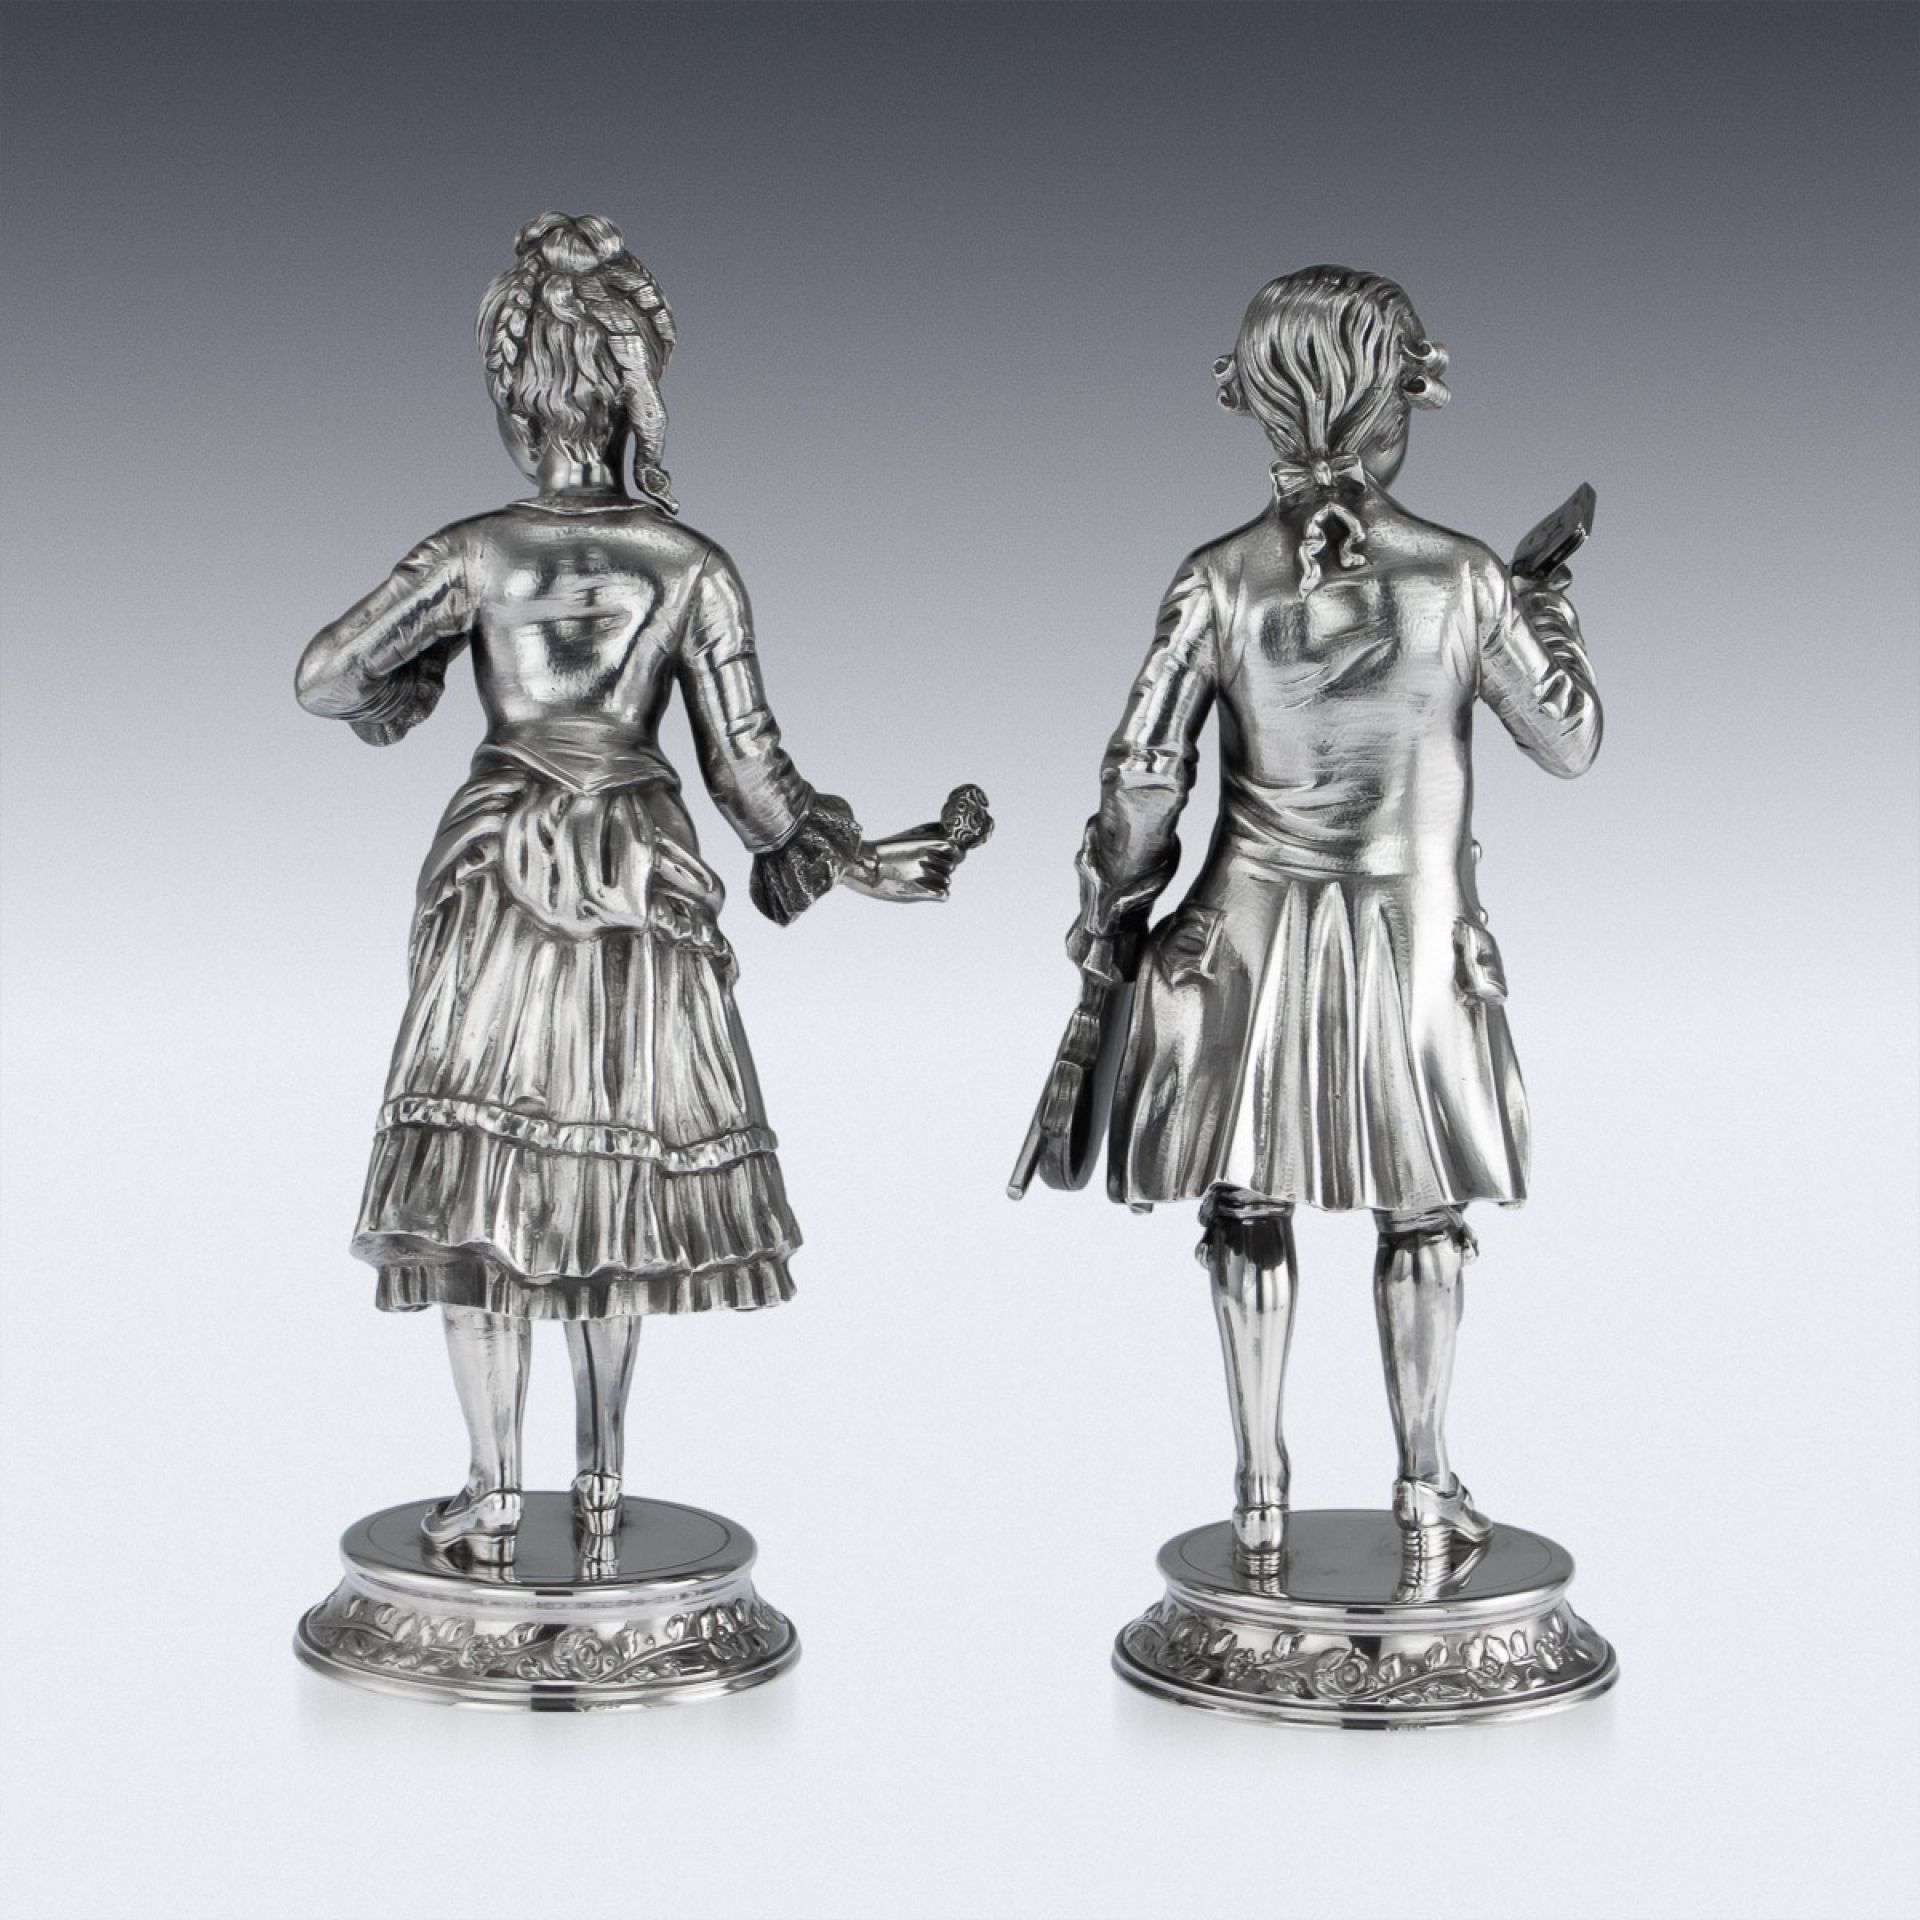 IMPRESSIVE 20THC SOLID SILVER PAIR OF FIGURES, GARRARD & CO C.1986